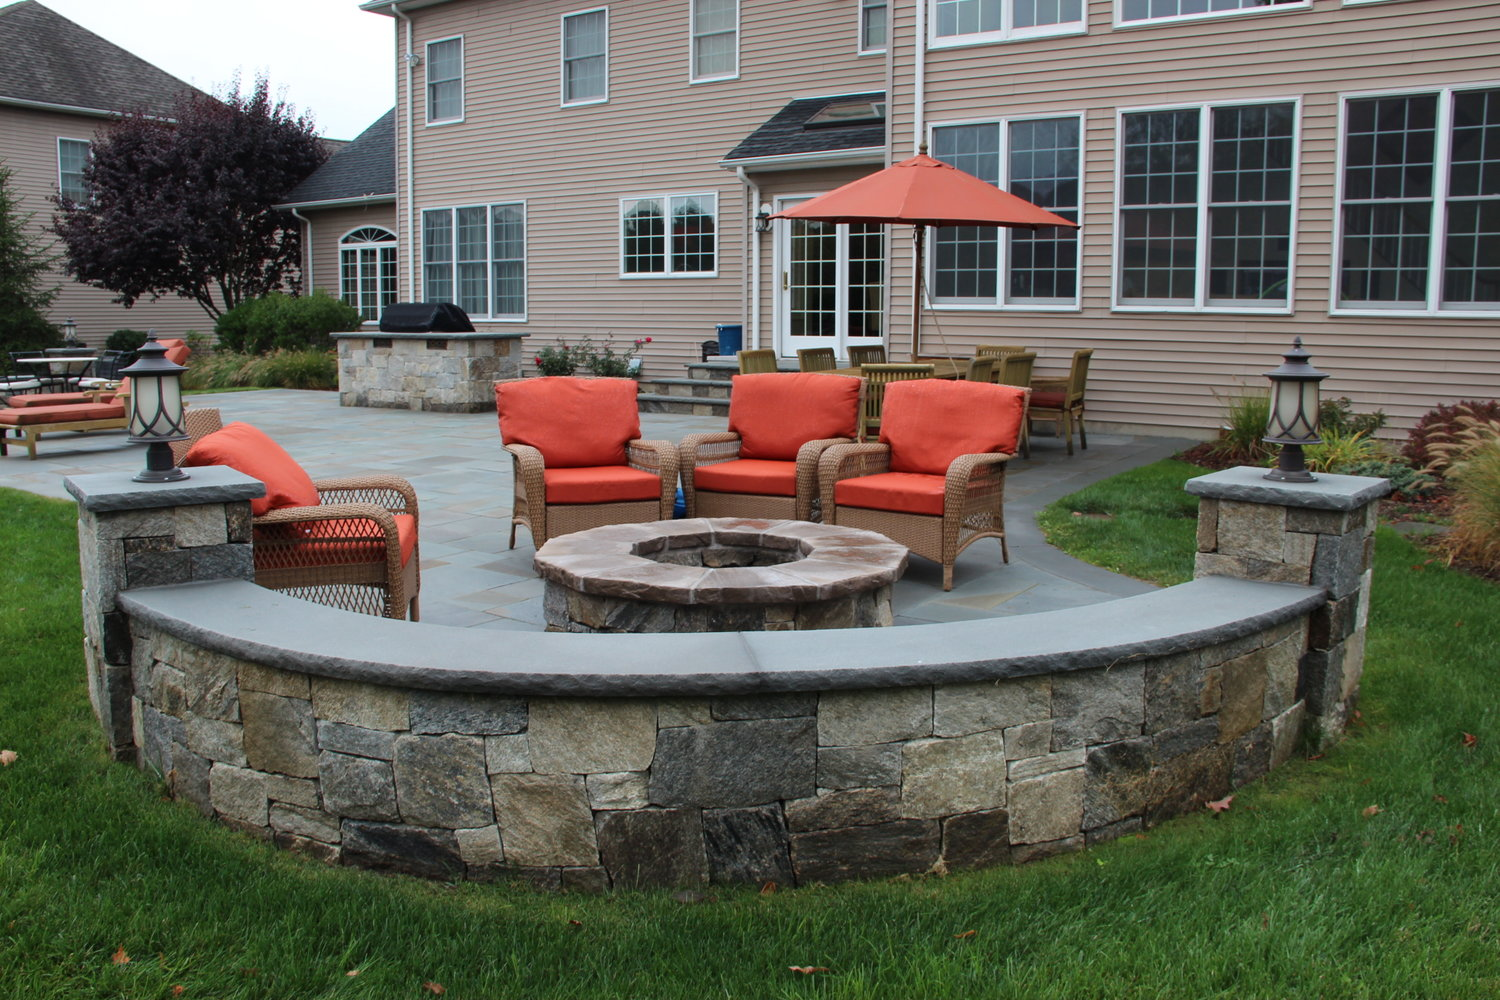 Why You Should Add A Fire Pit To Your Outdoor Patio In Your Somers